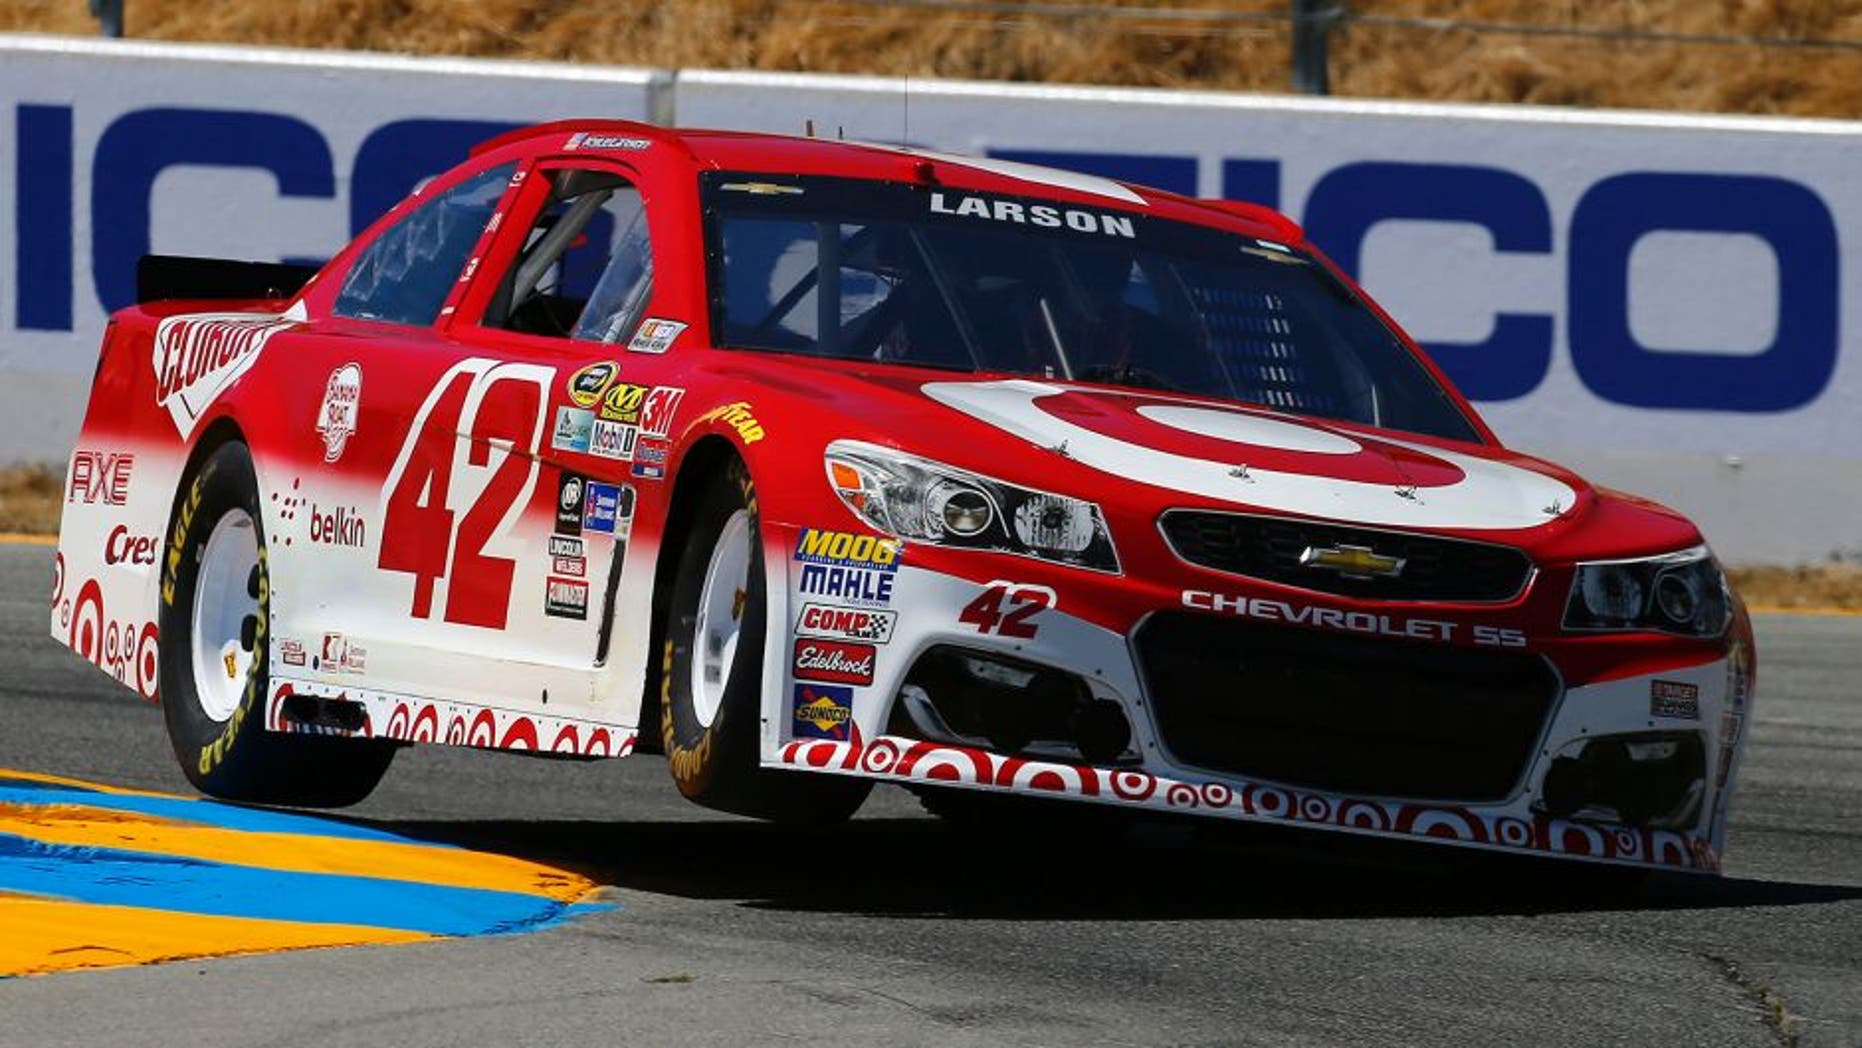 SONOMA, CA - JUNE 25: Kyle Larson, driver of the #42 Target Chevrolet, qualifies for the NASCAR Sprint Cup Series Toyota/Save Mart 350 at Sonoma Raceway on June 25, 2016 in Sonoma, California. (Photo by Jonathan Ferrey/Getty Images)